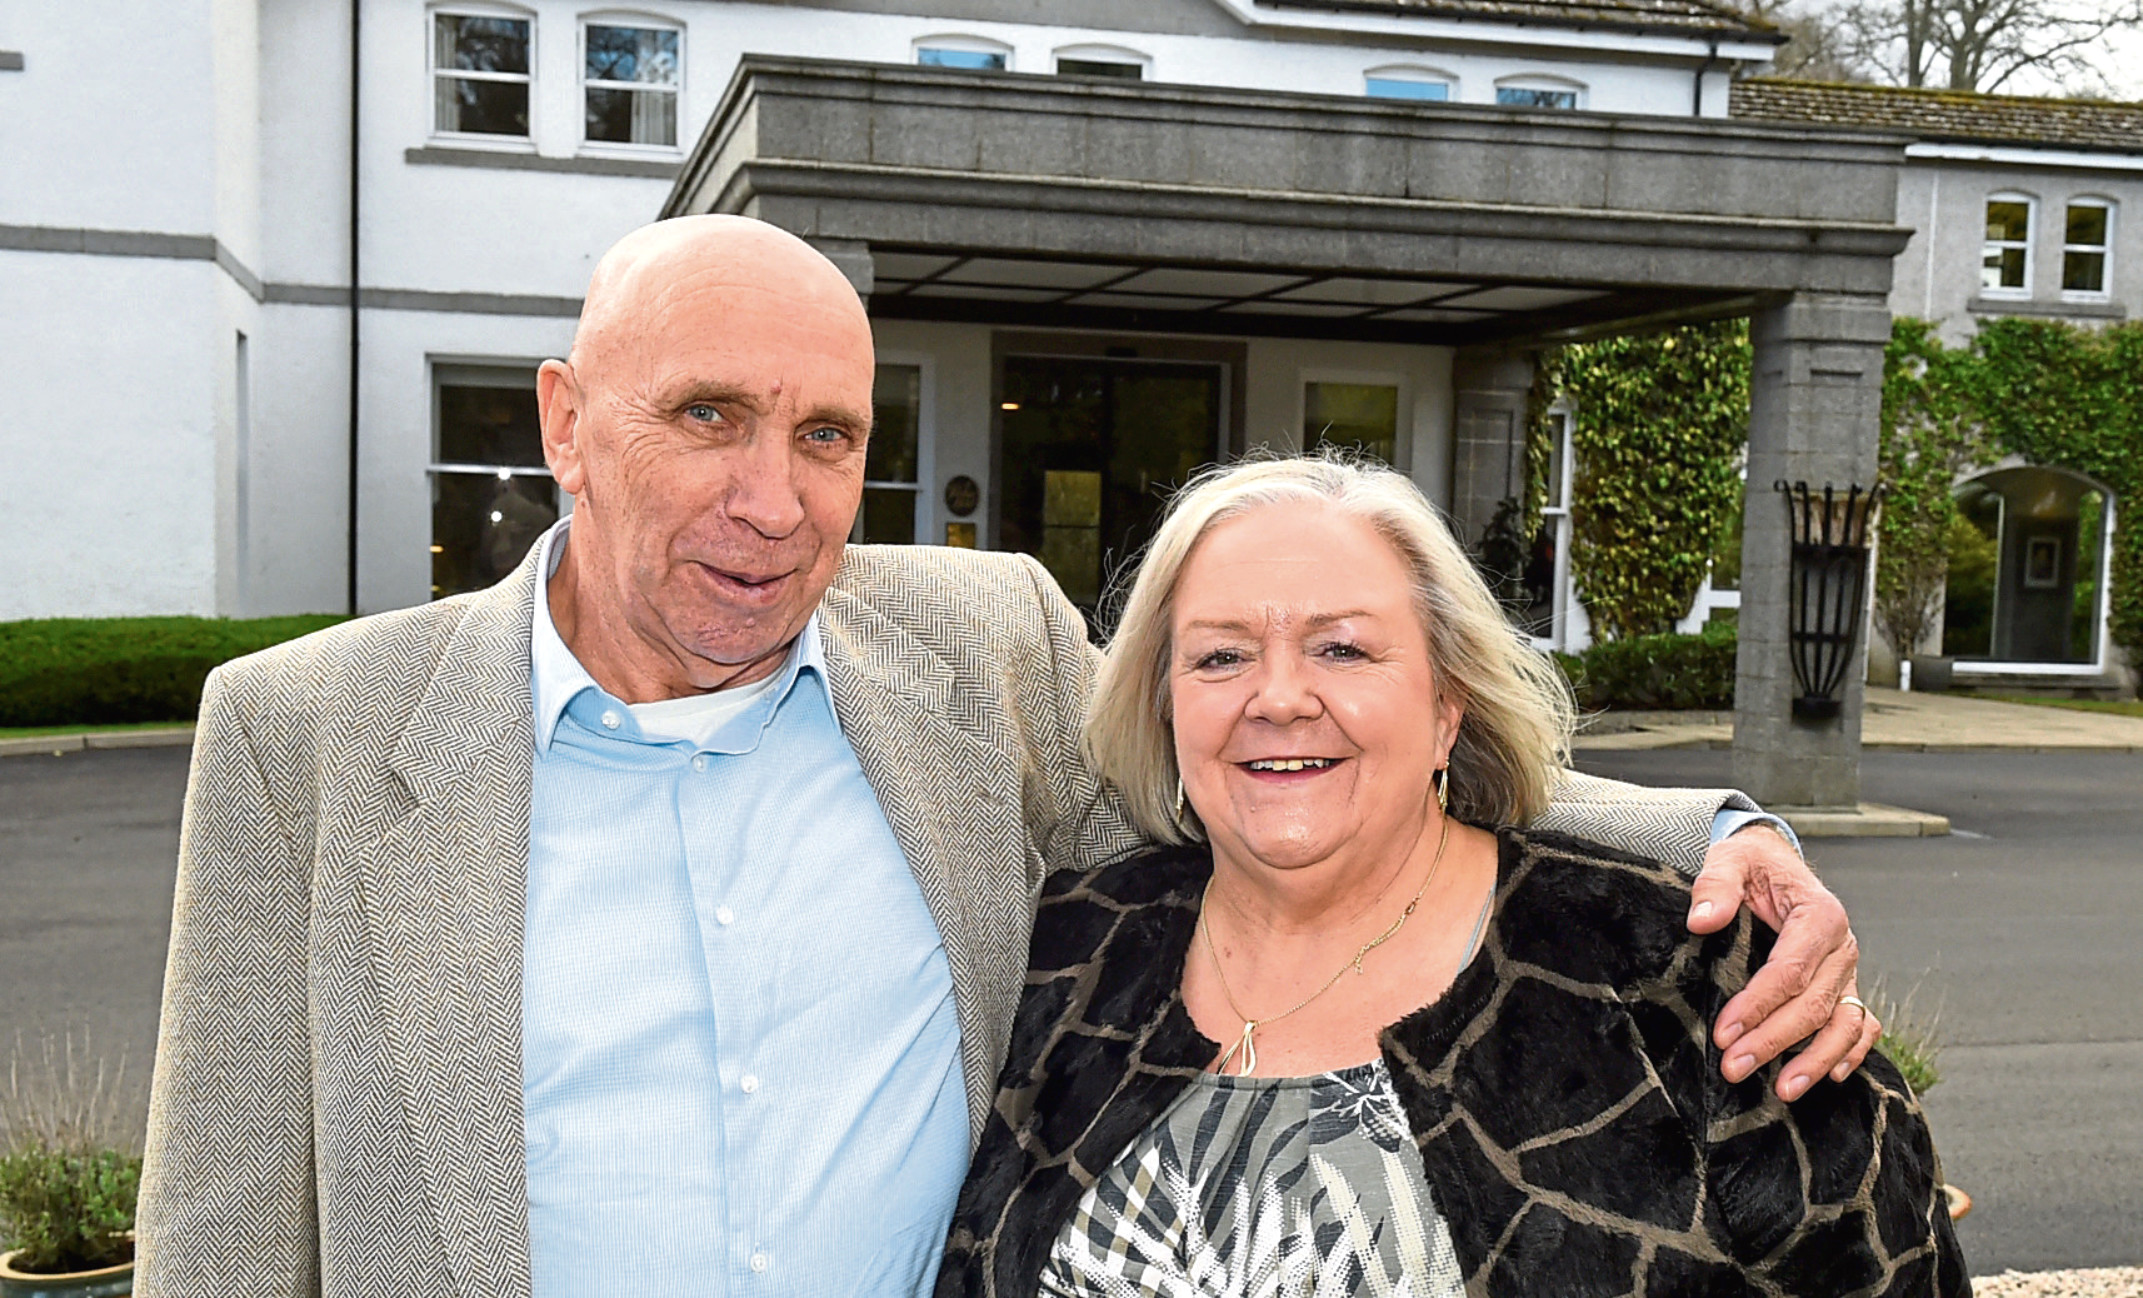 Jackpot winners Fred and Lesley at the Marcliffe Hotel, Aberdeen.